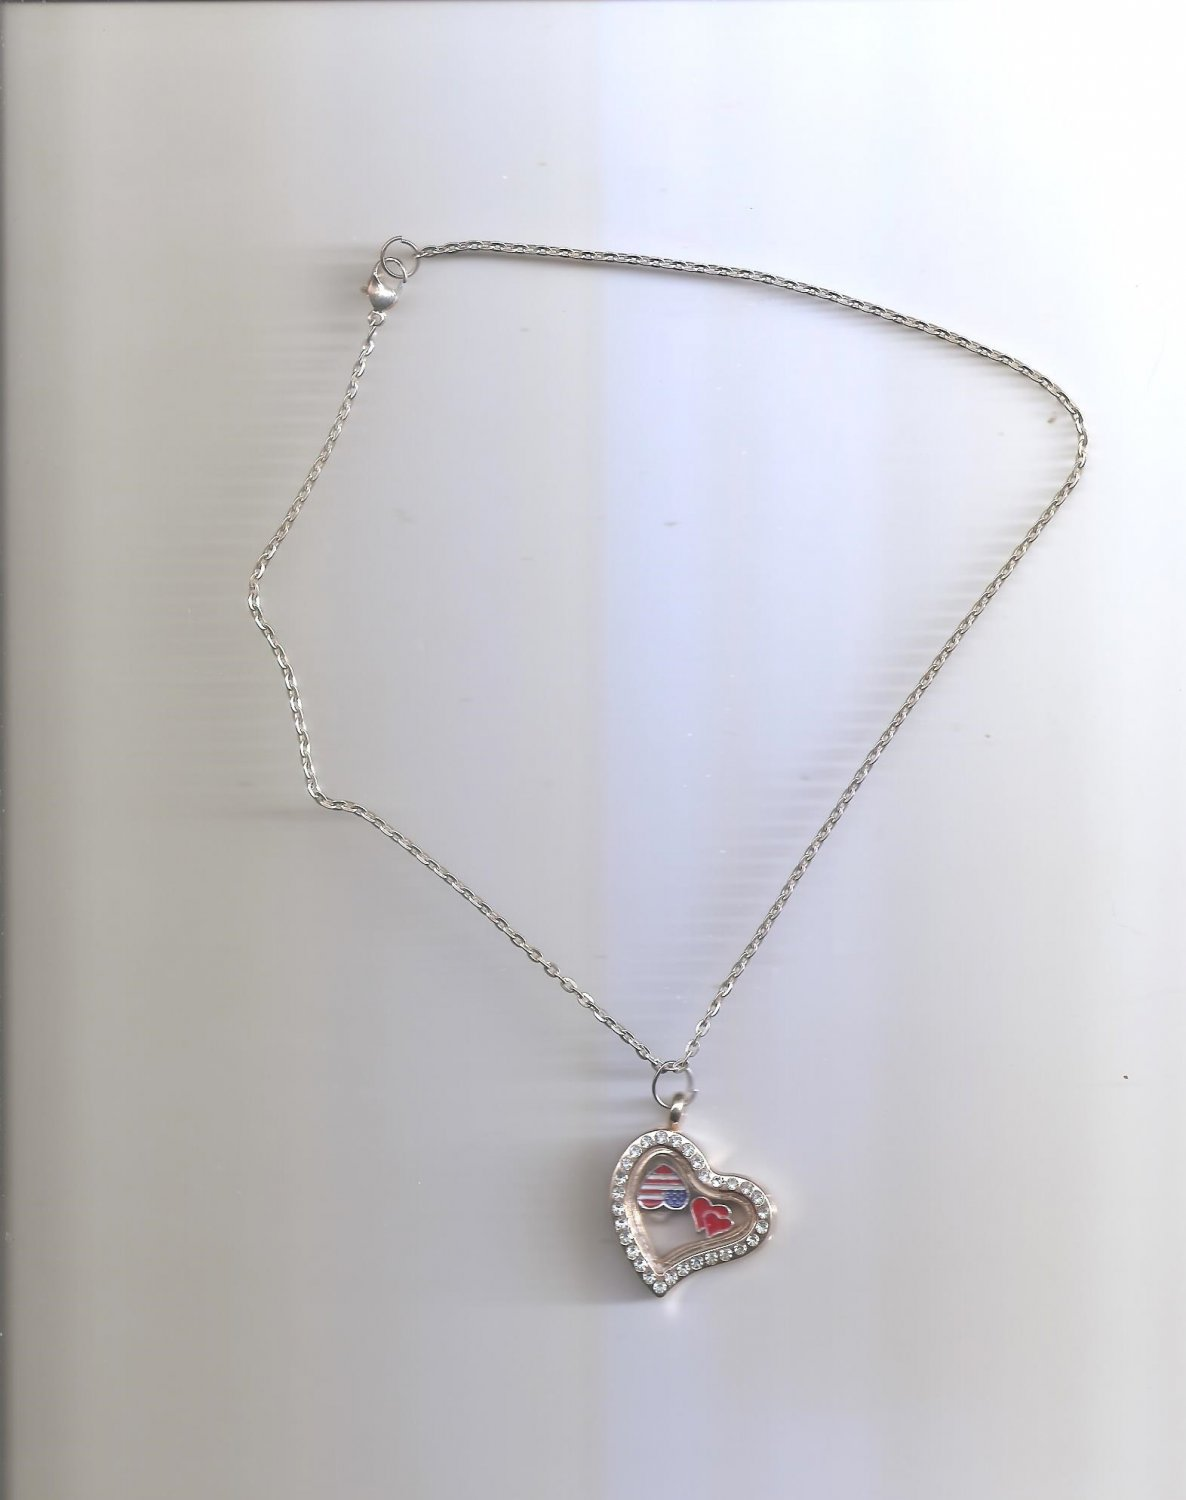 Silver Gold Heart Living Memory Floating Charms Locket Necklace